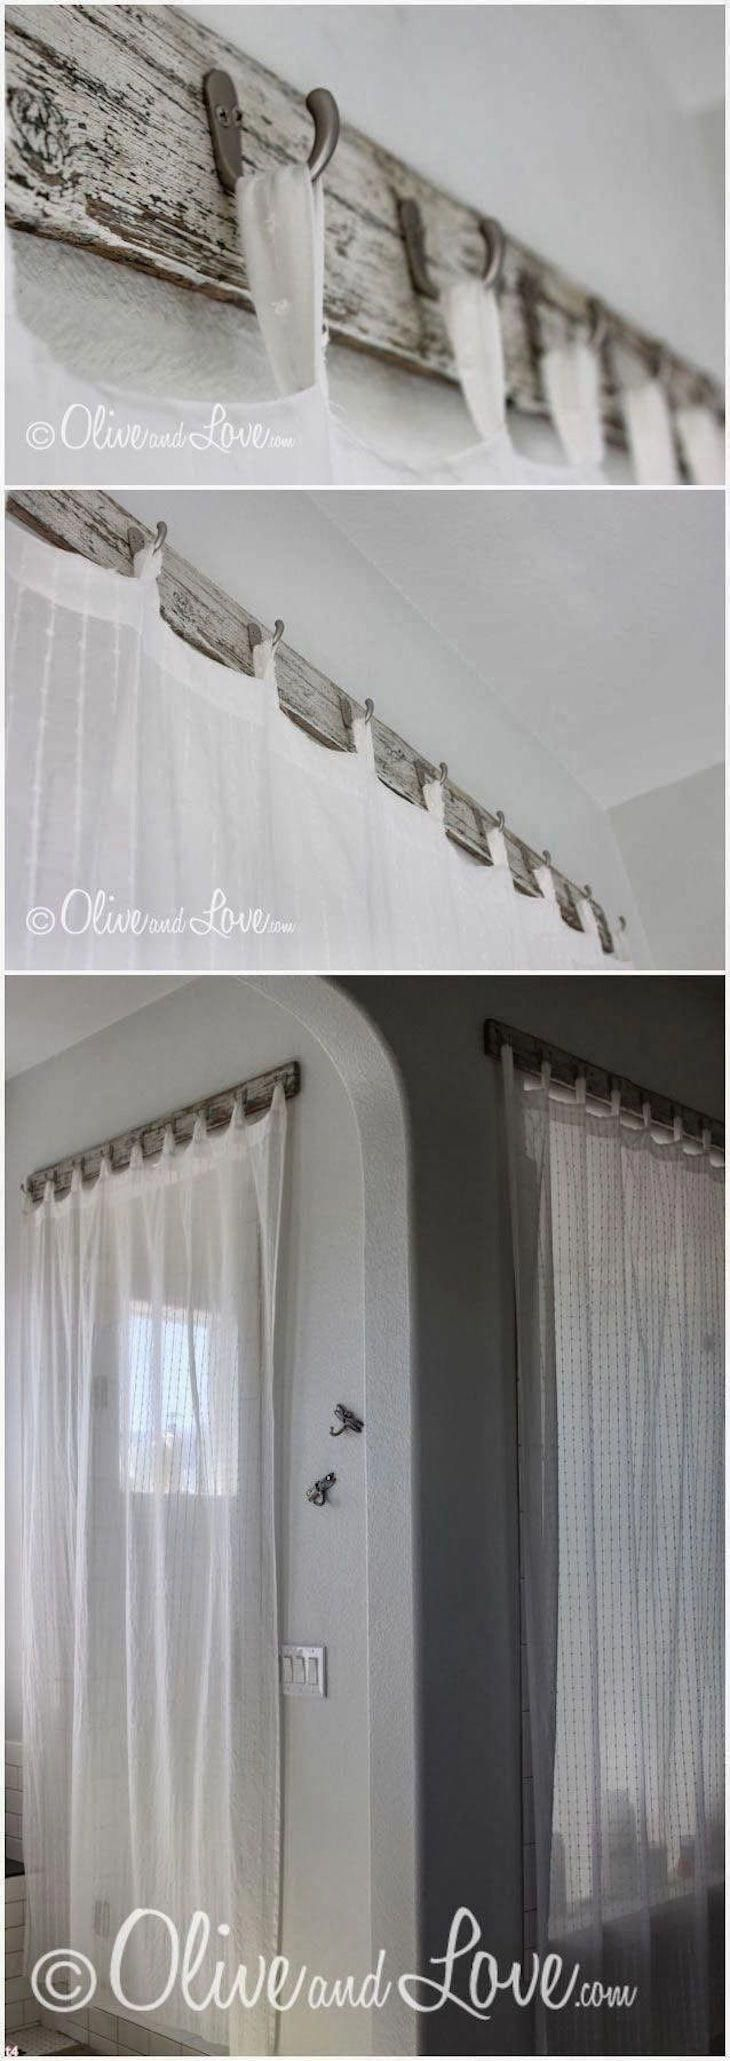 Not only curtains but also a stylish curtain rods …